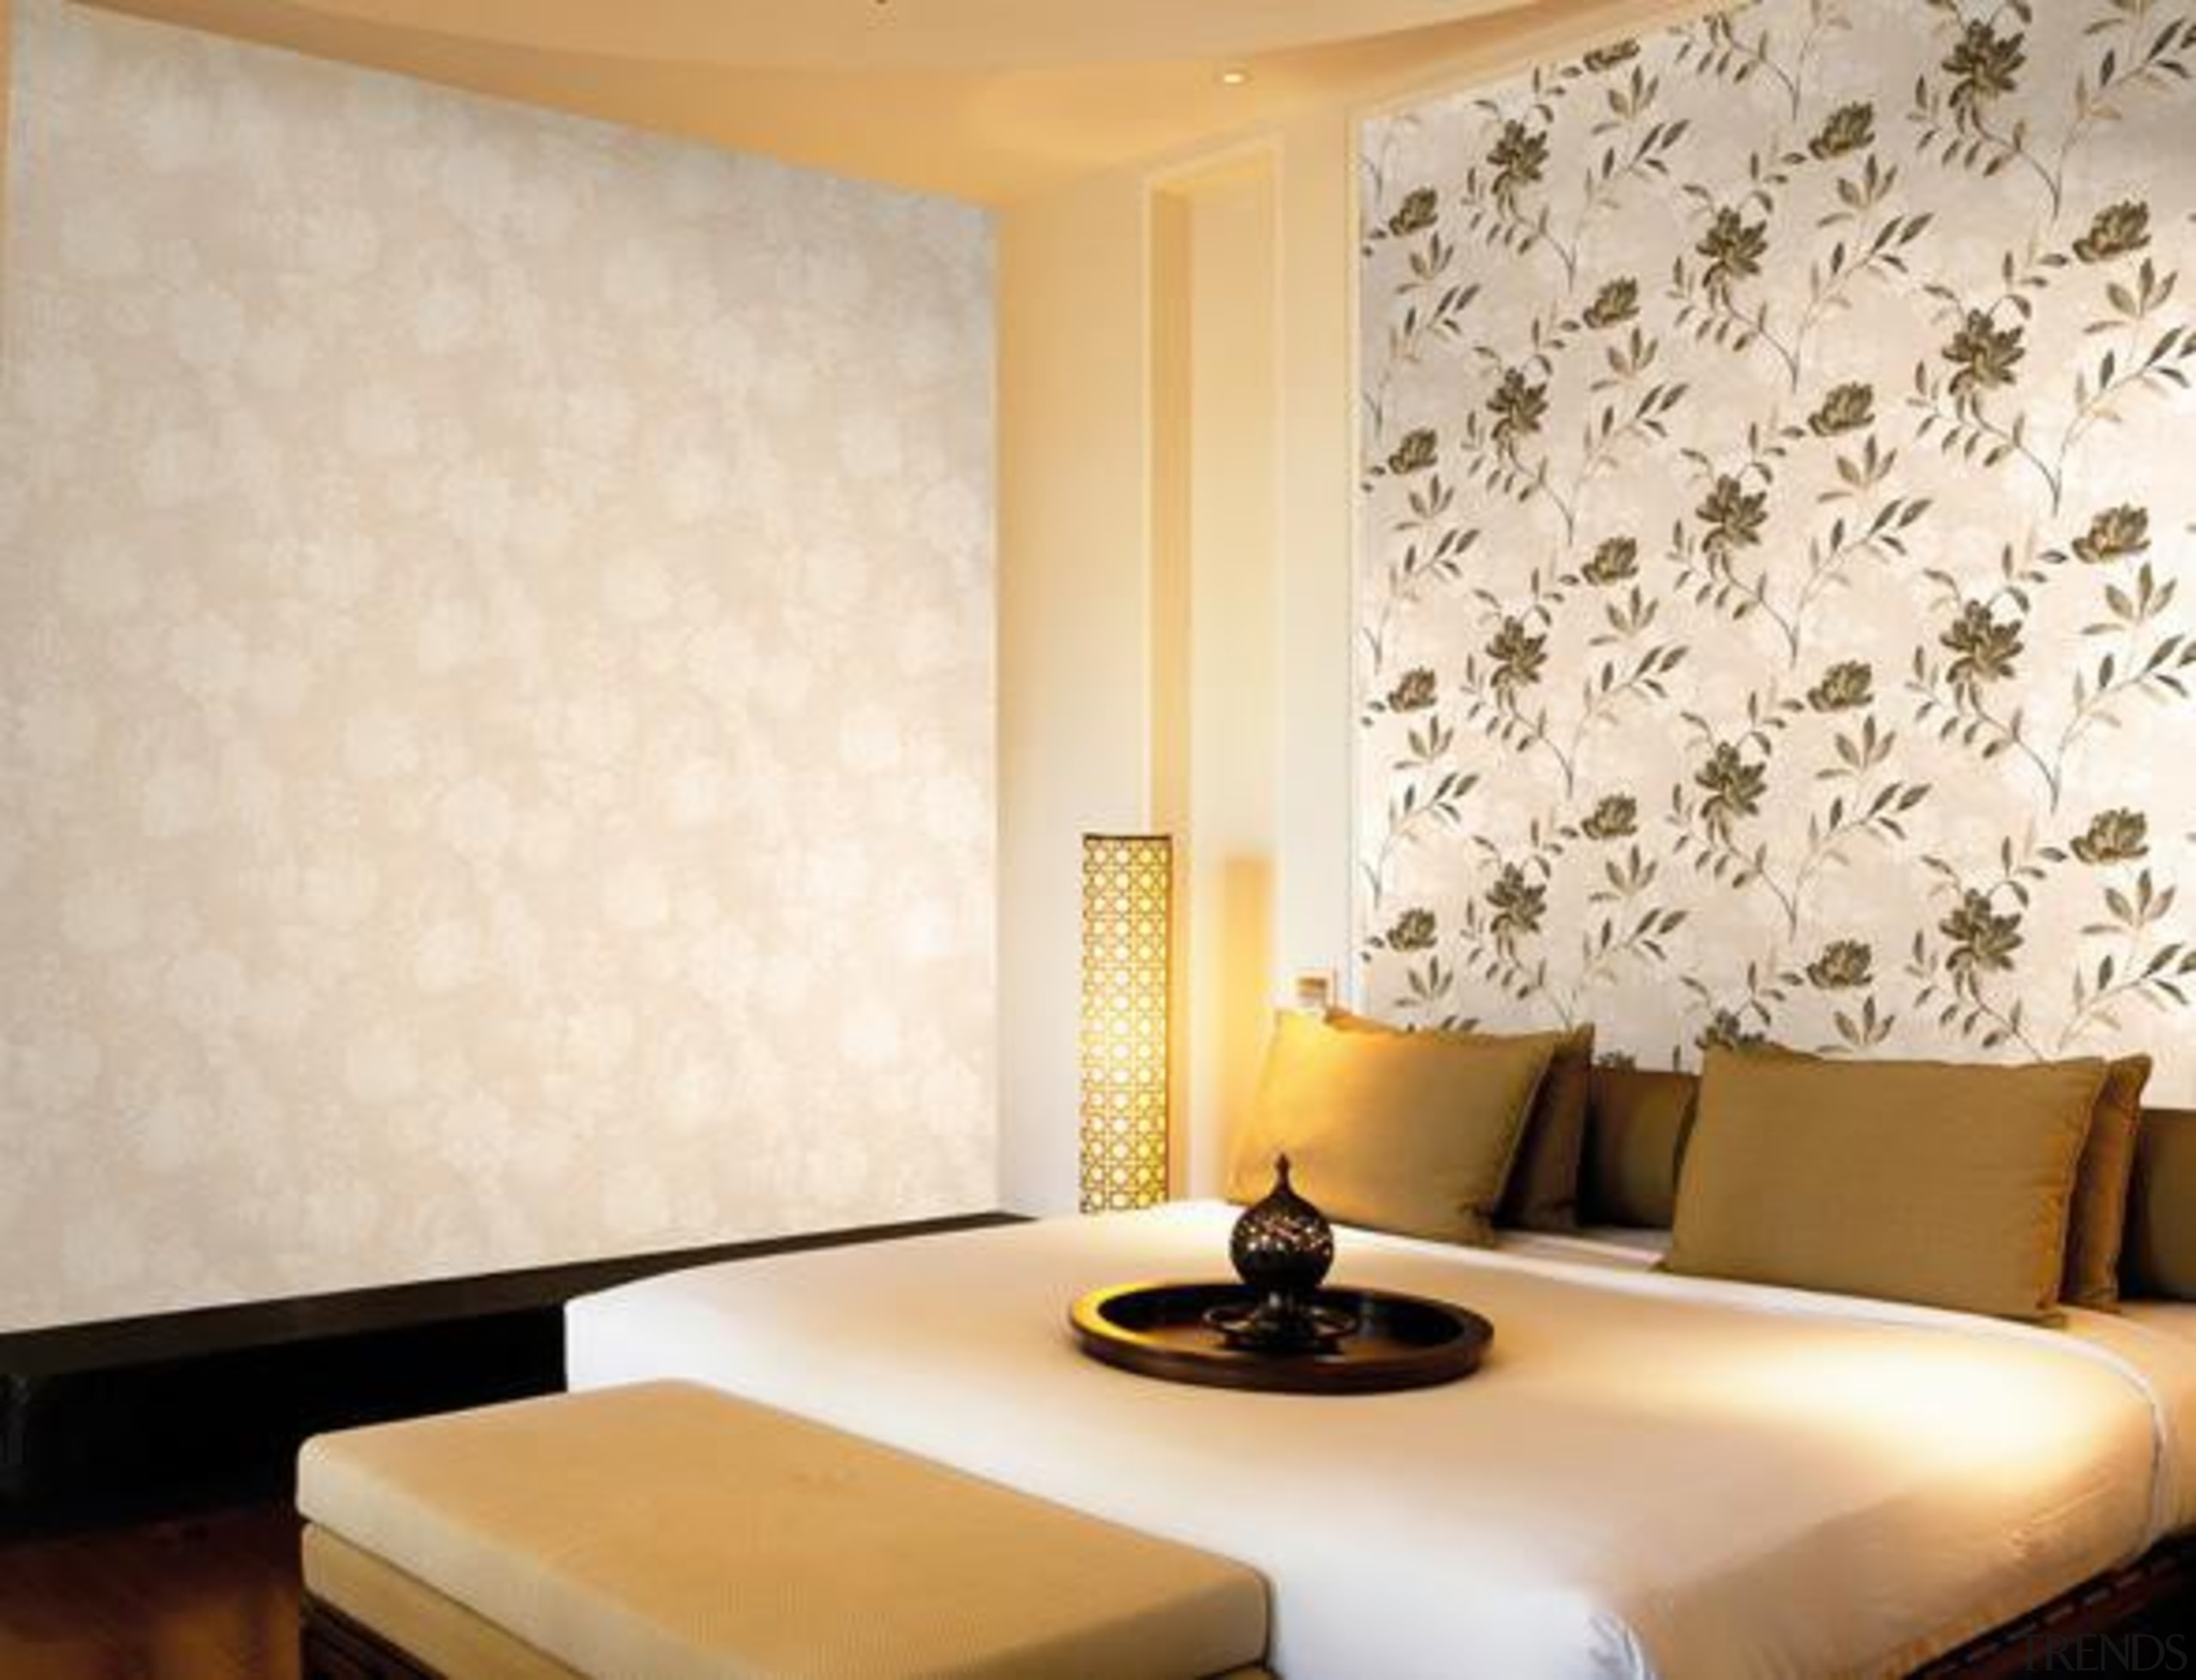 Modern Style Range - ceiling | curtain | ceiling, curtain, floor, flooring, interior design, living room, room, suite, wall, wallpaper, window, window covering, window treatment, white